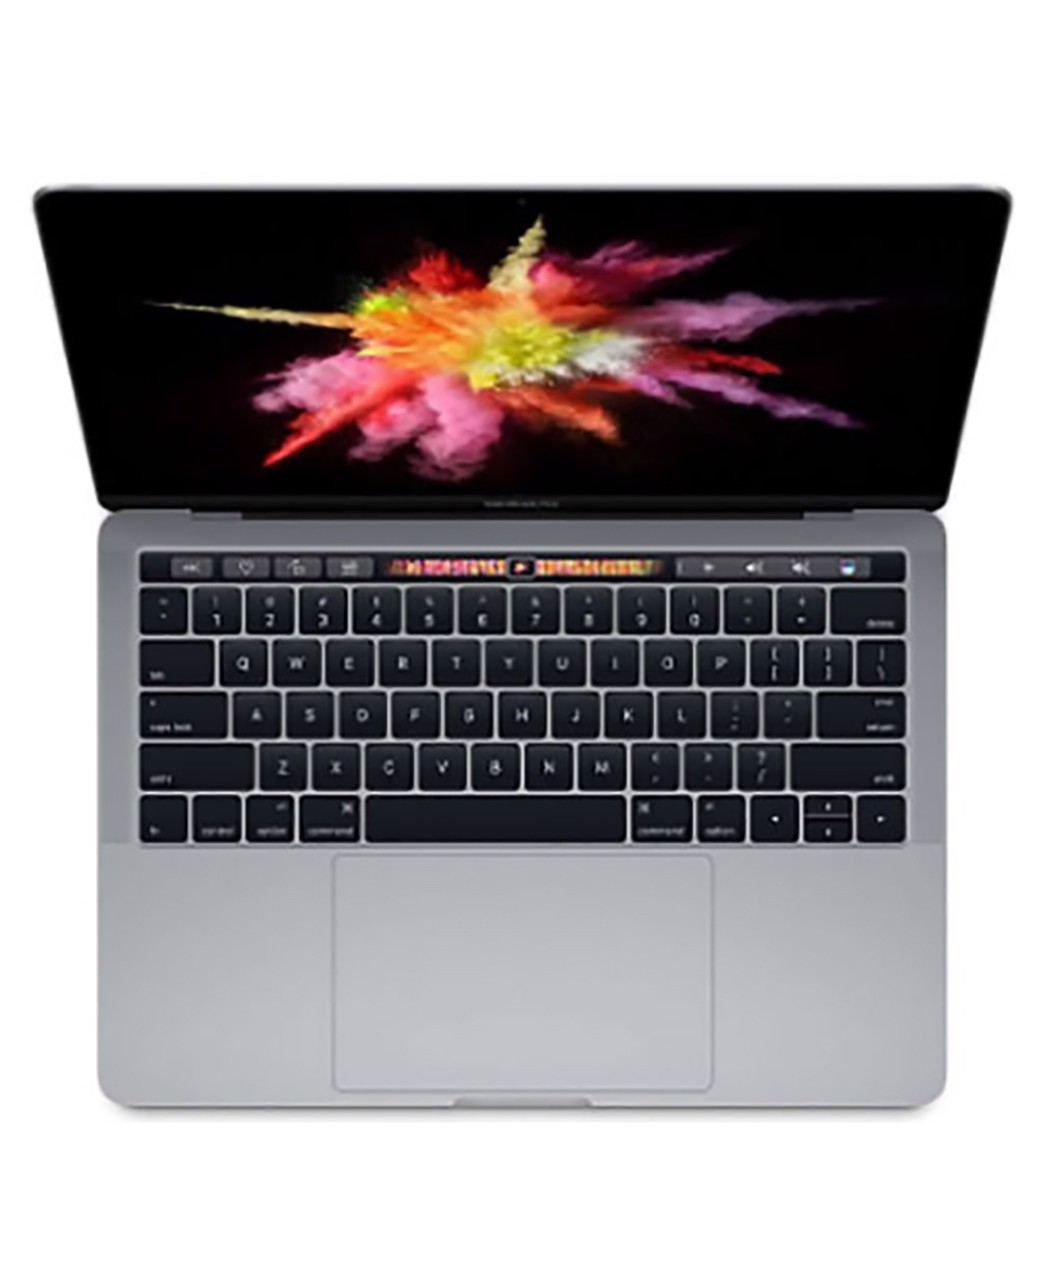 Macbook Pro 13 inch SSD 256GB - TouchBar - 2017